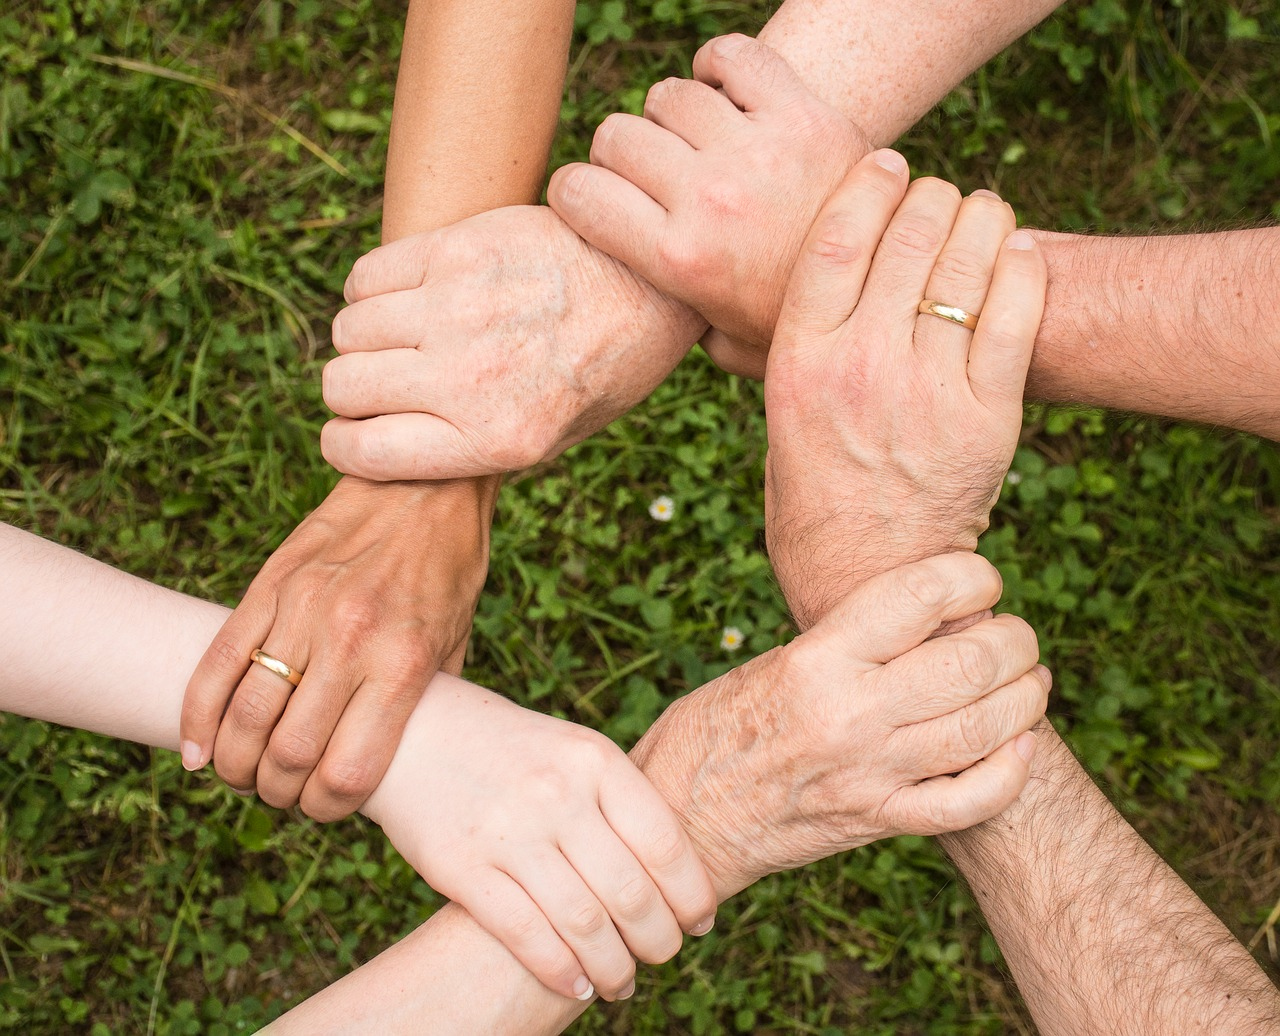 Finding Community in Your New Church